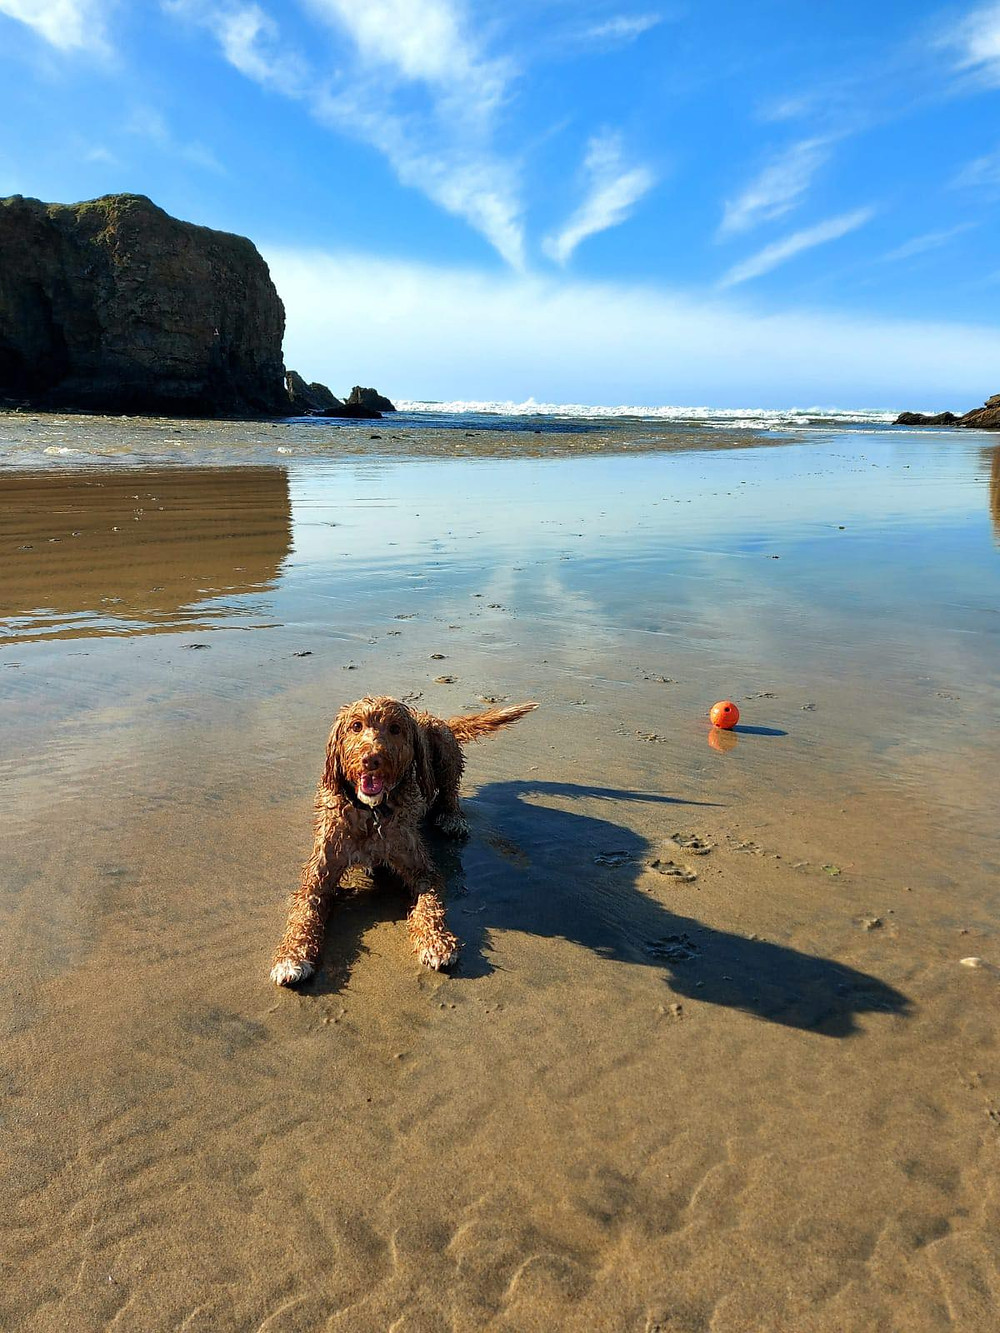 Ross's cockapoo dog Ralph laying on the sand with his ball. Blue skies and sea in the background